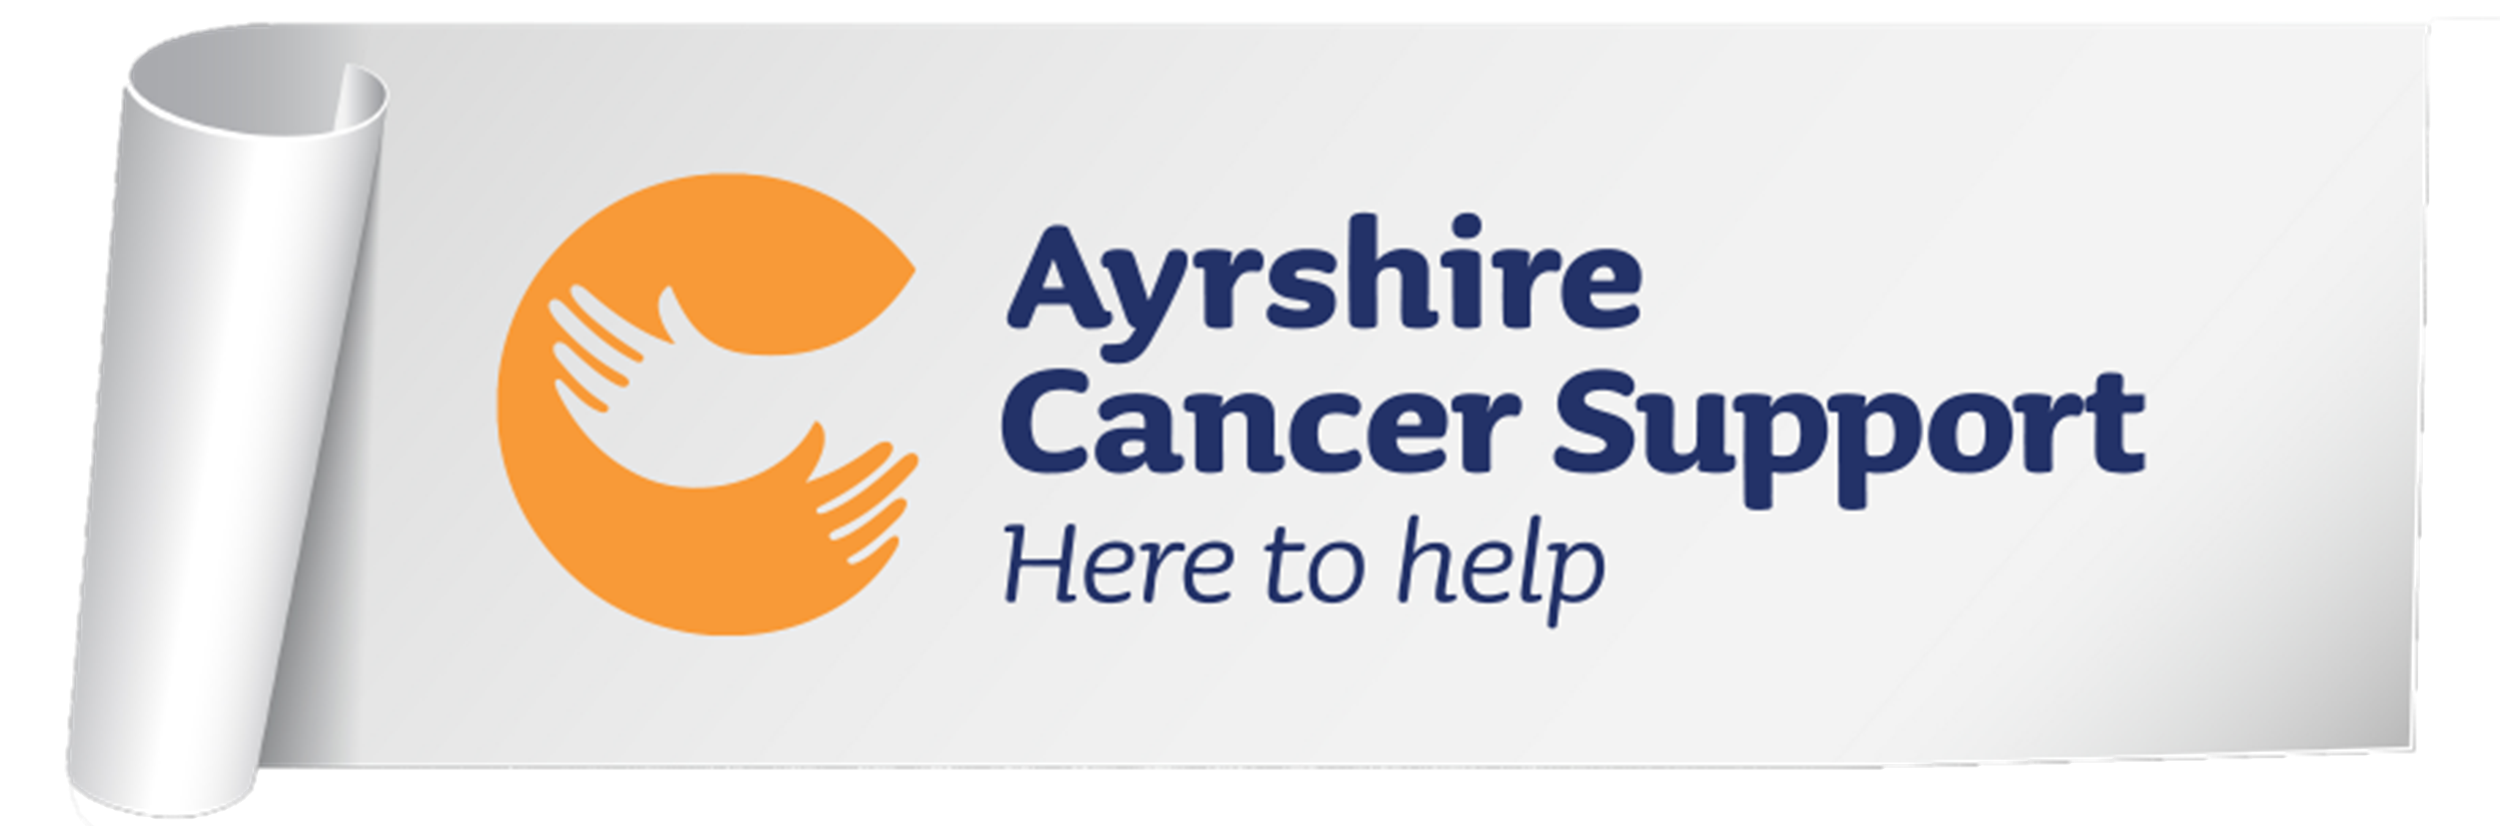 2021 Nominated Charity of the Year - Ayrshire Cancer Support